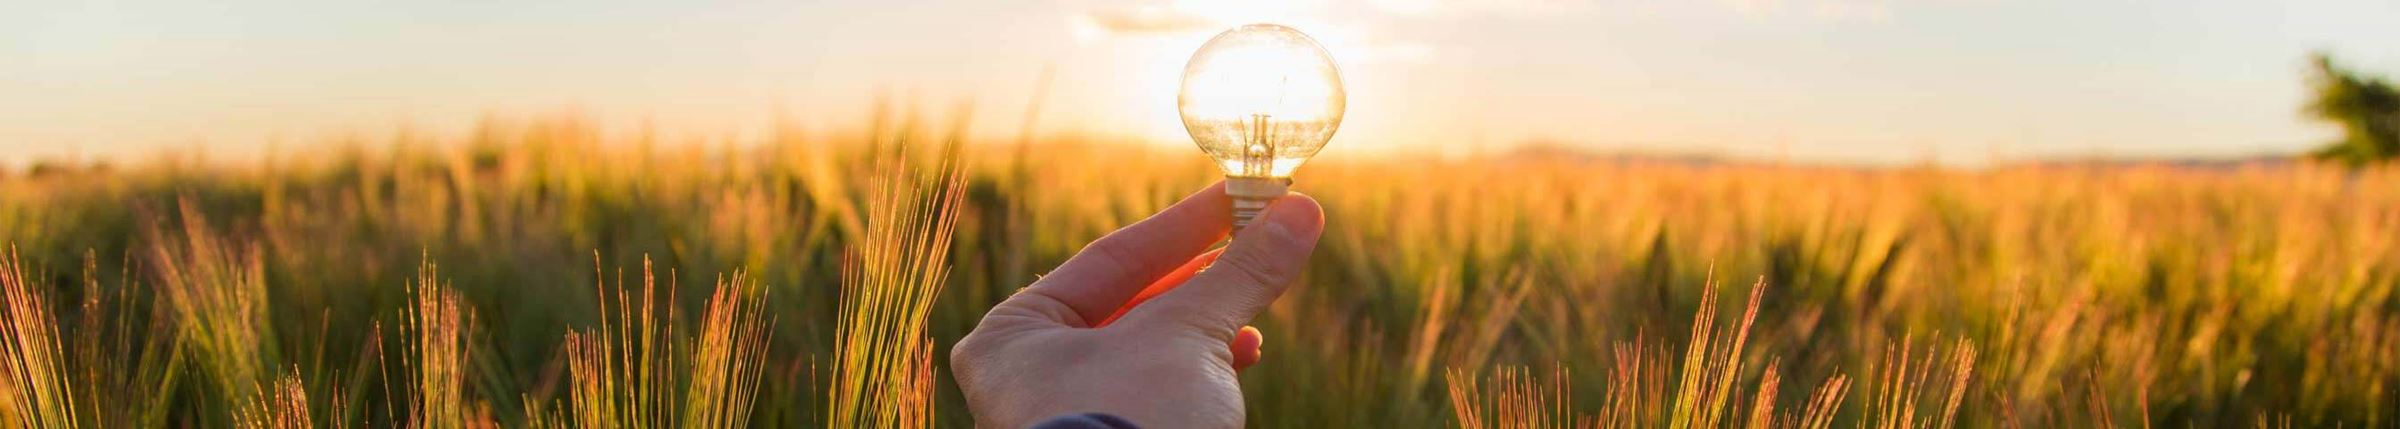 A hand holding a lightbulb in the middle of a field, with sunlight illuminating the bulb